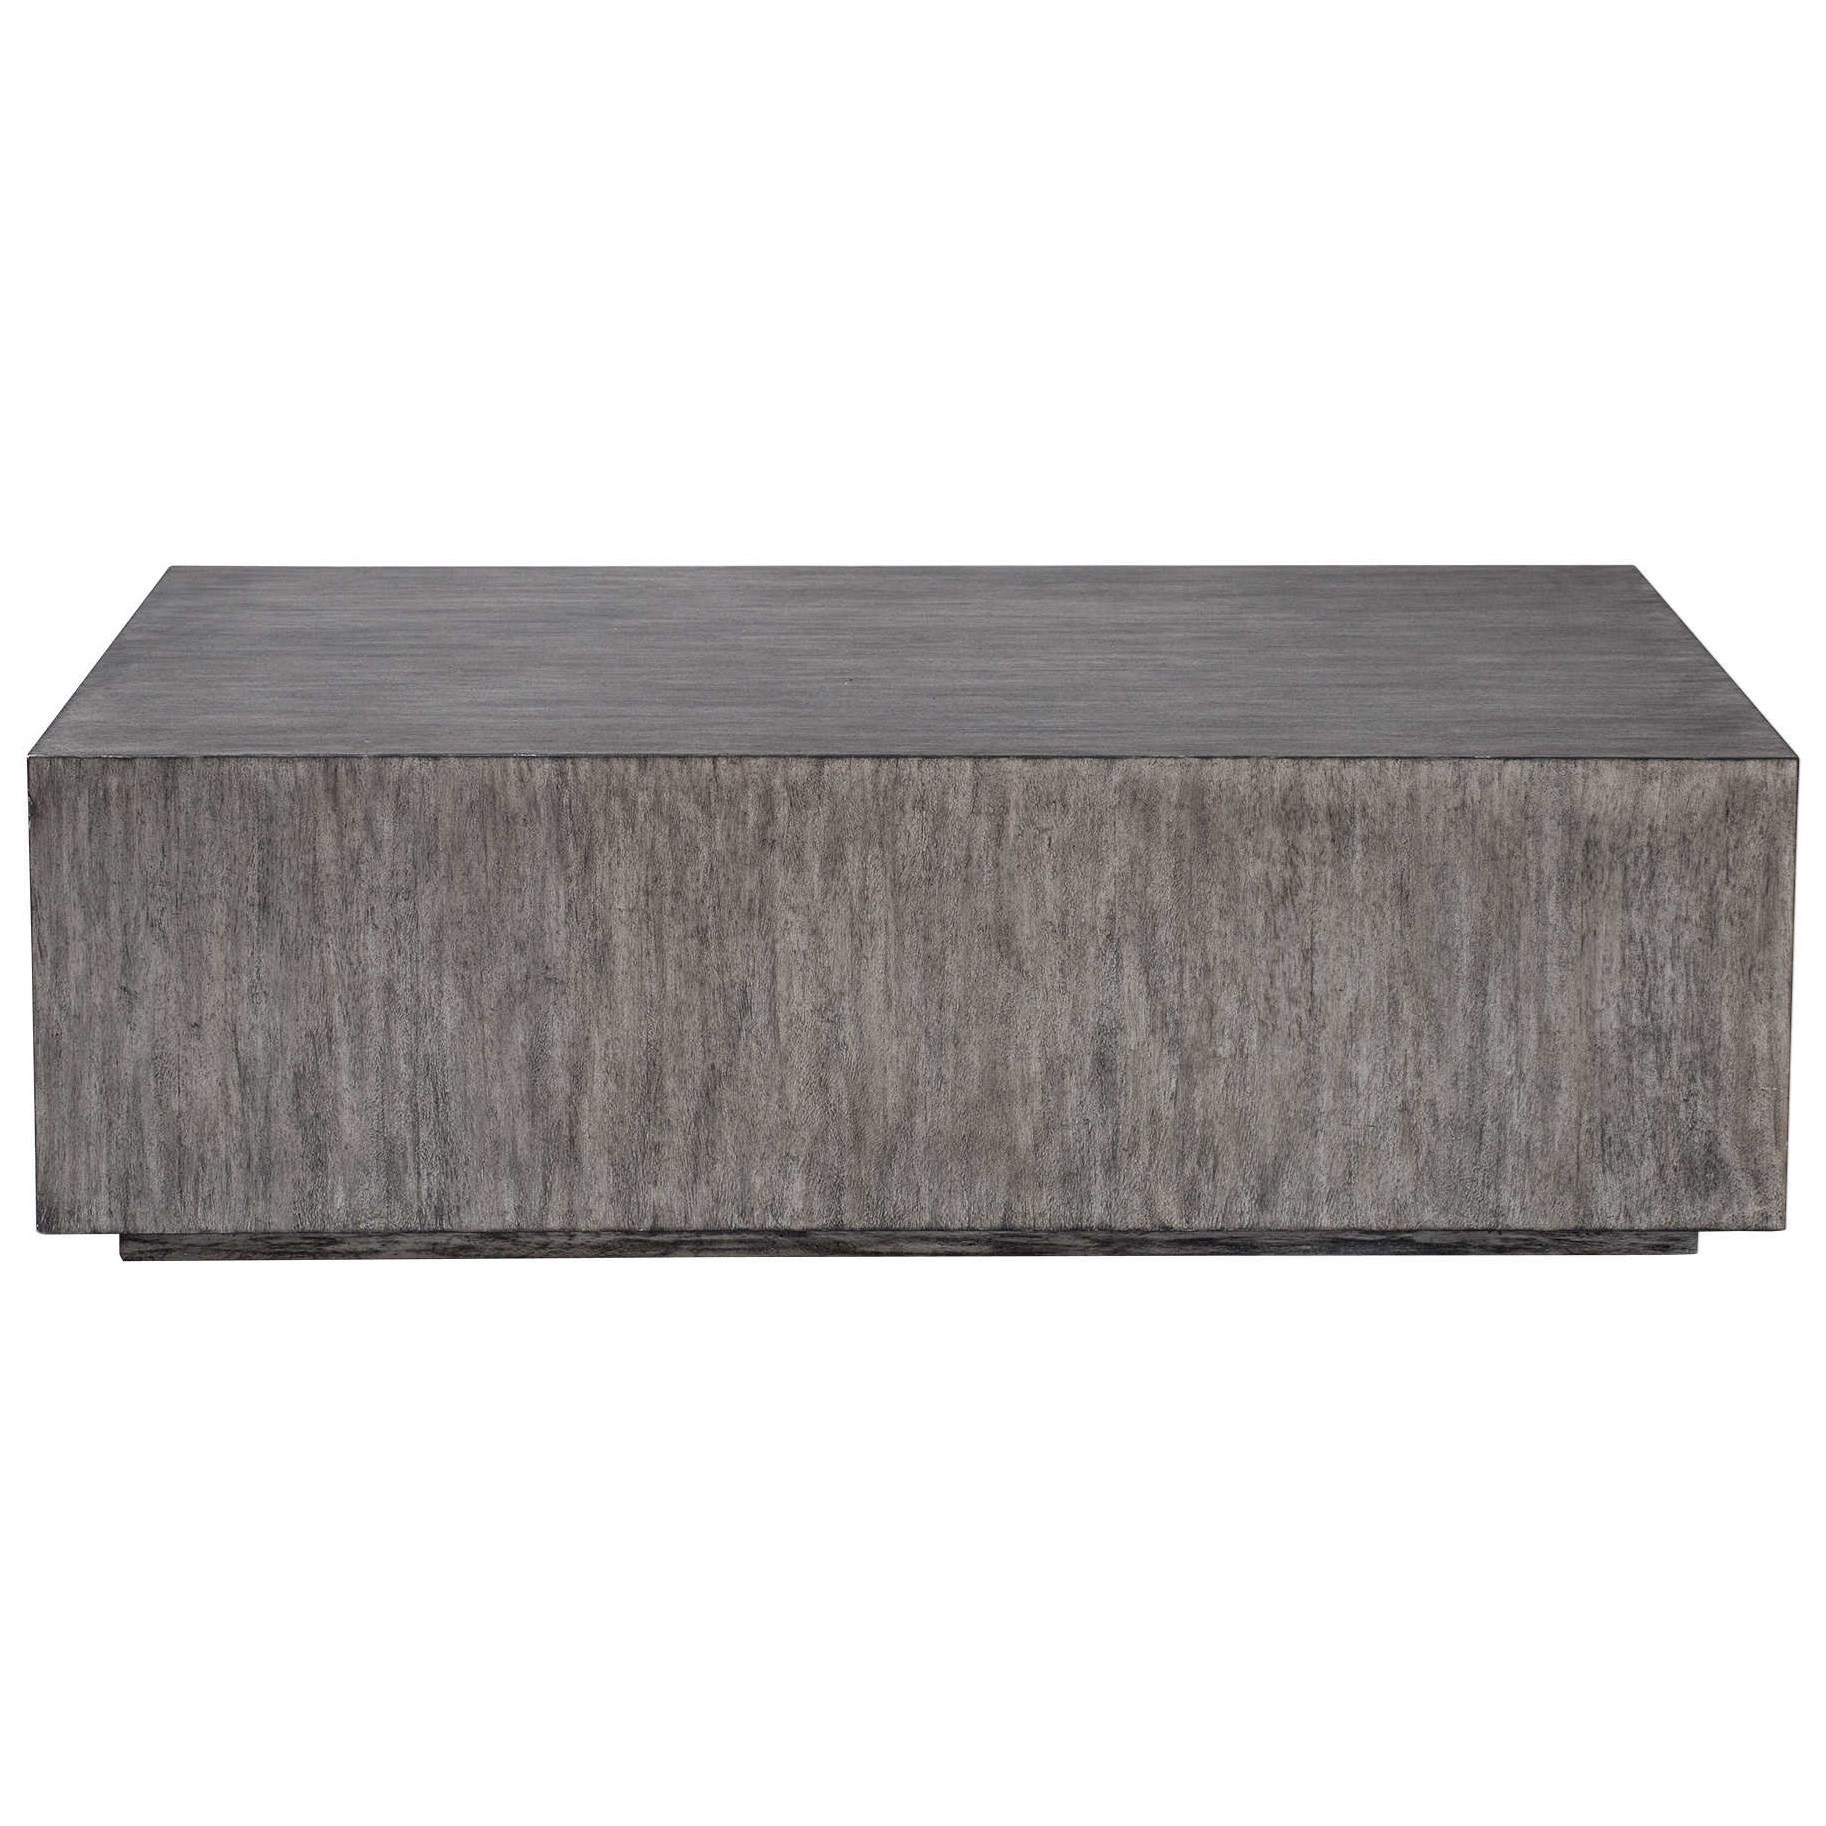 Accent Furniture - Occasional Tables Kareem Modern Gray Coffee Table by Uttermost at Suburban Furniture